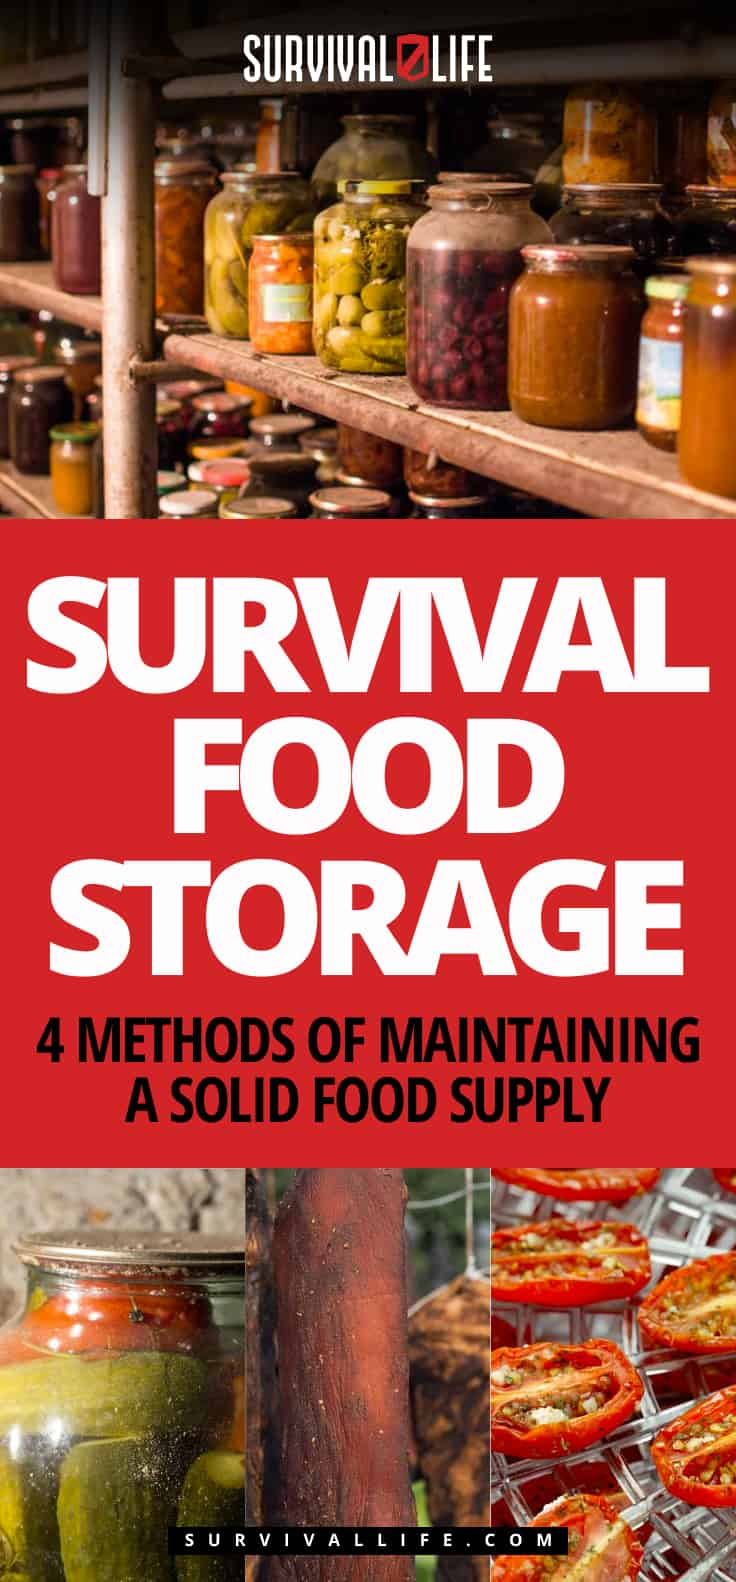 Survival Food Storage | 4 Methods Of Maintaining A Solid Food Supply